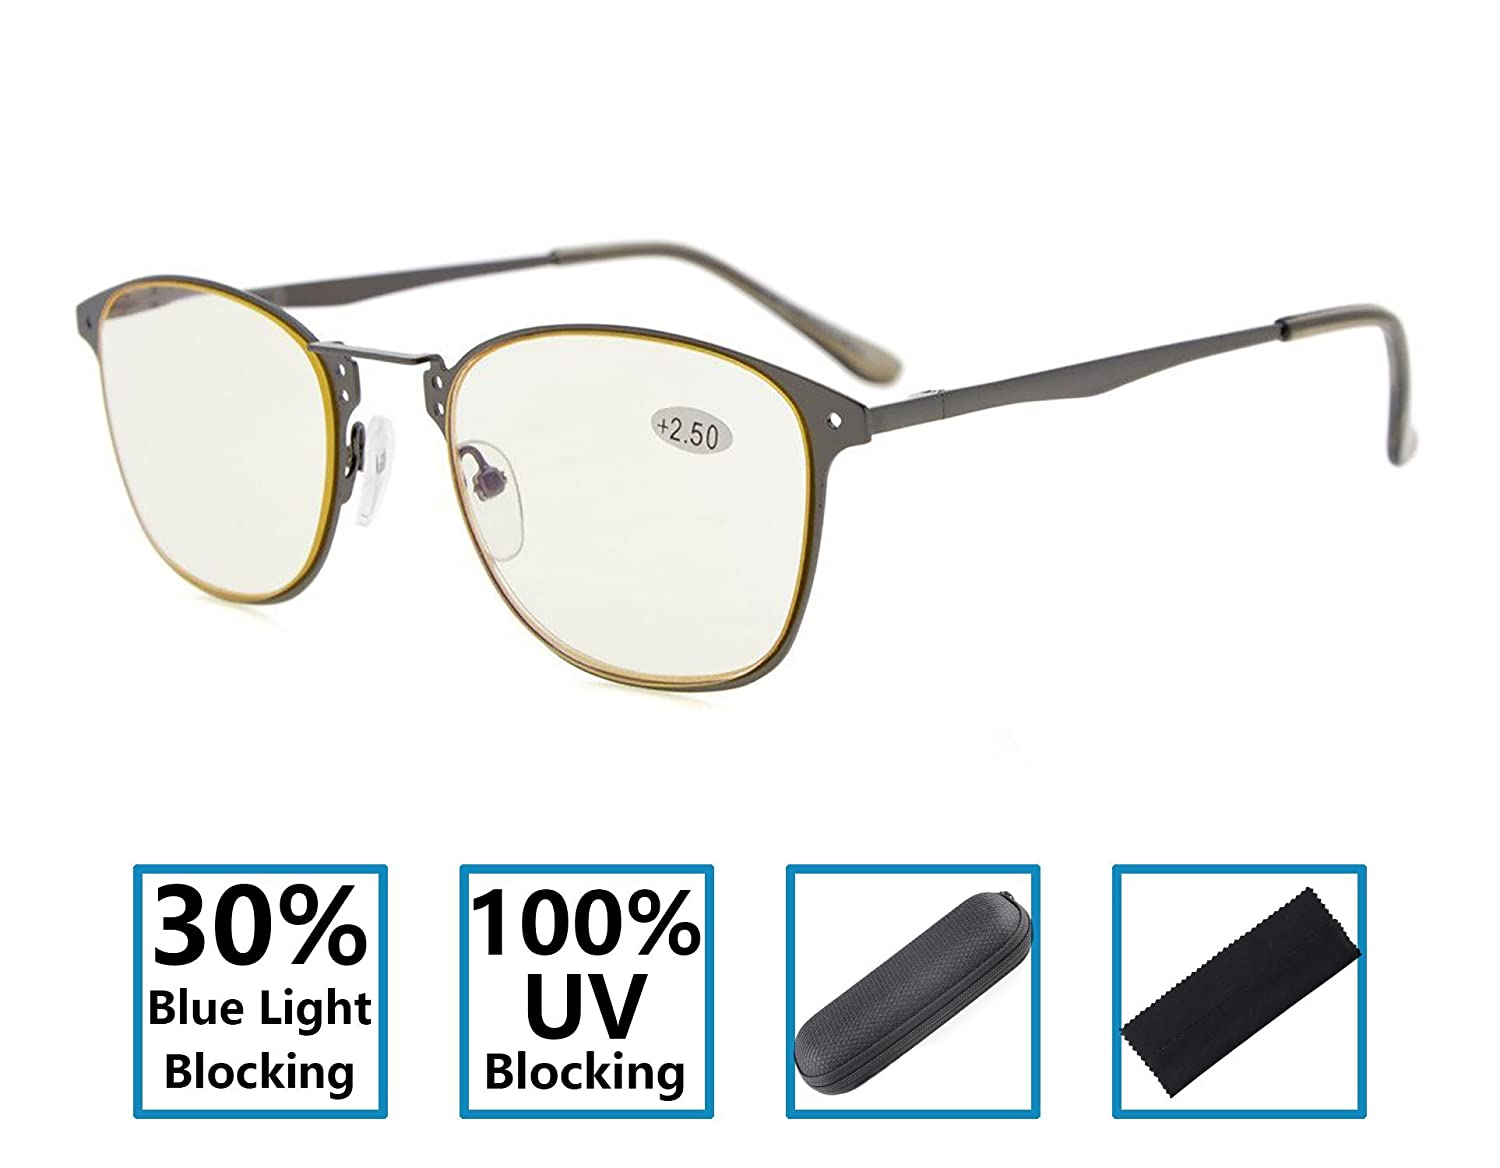 Gr8Sight 30% Blue Light Blocking, 100% UV Protection Quality Retro Frame Spring Hinges Specs Reading Glasses For Computers, TV And All Electronic Devices Yellow Lens Gunmetal +4.00